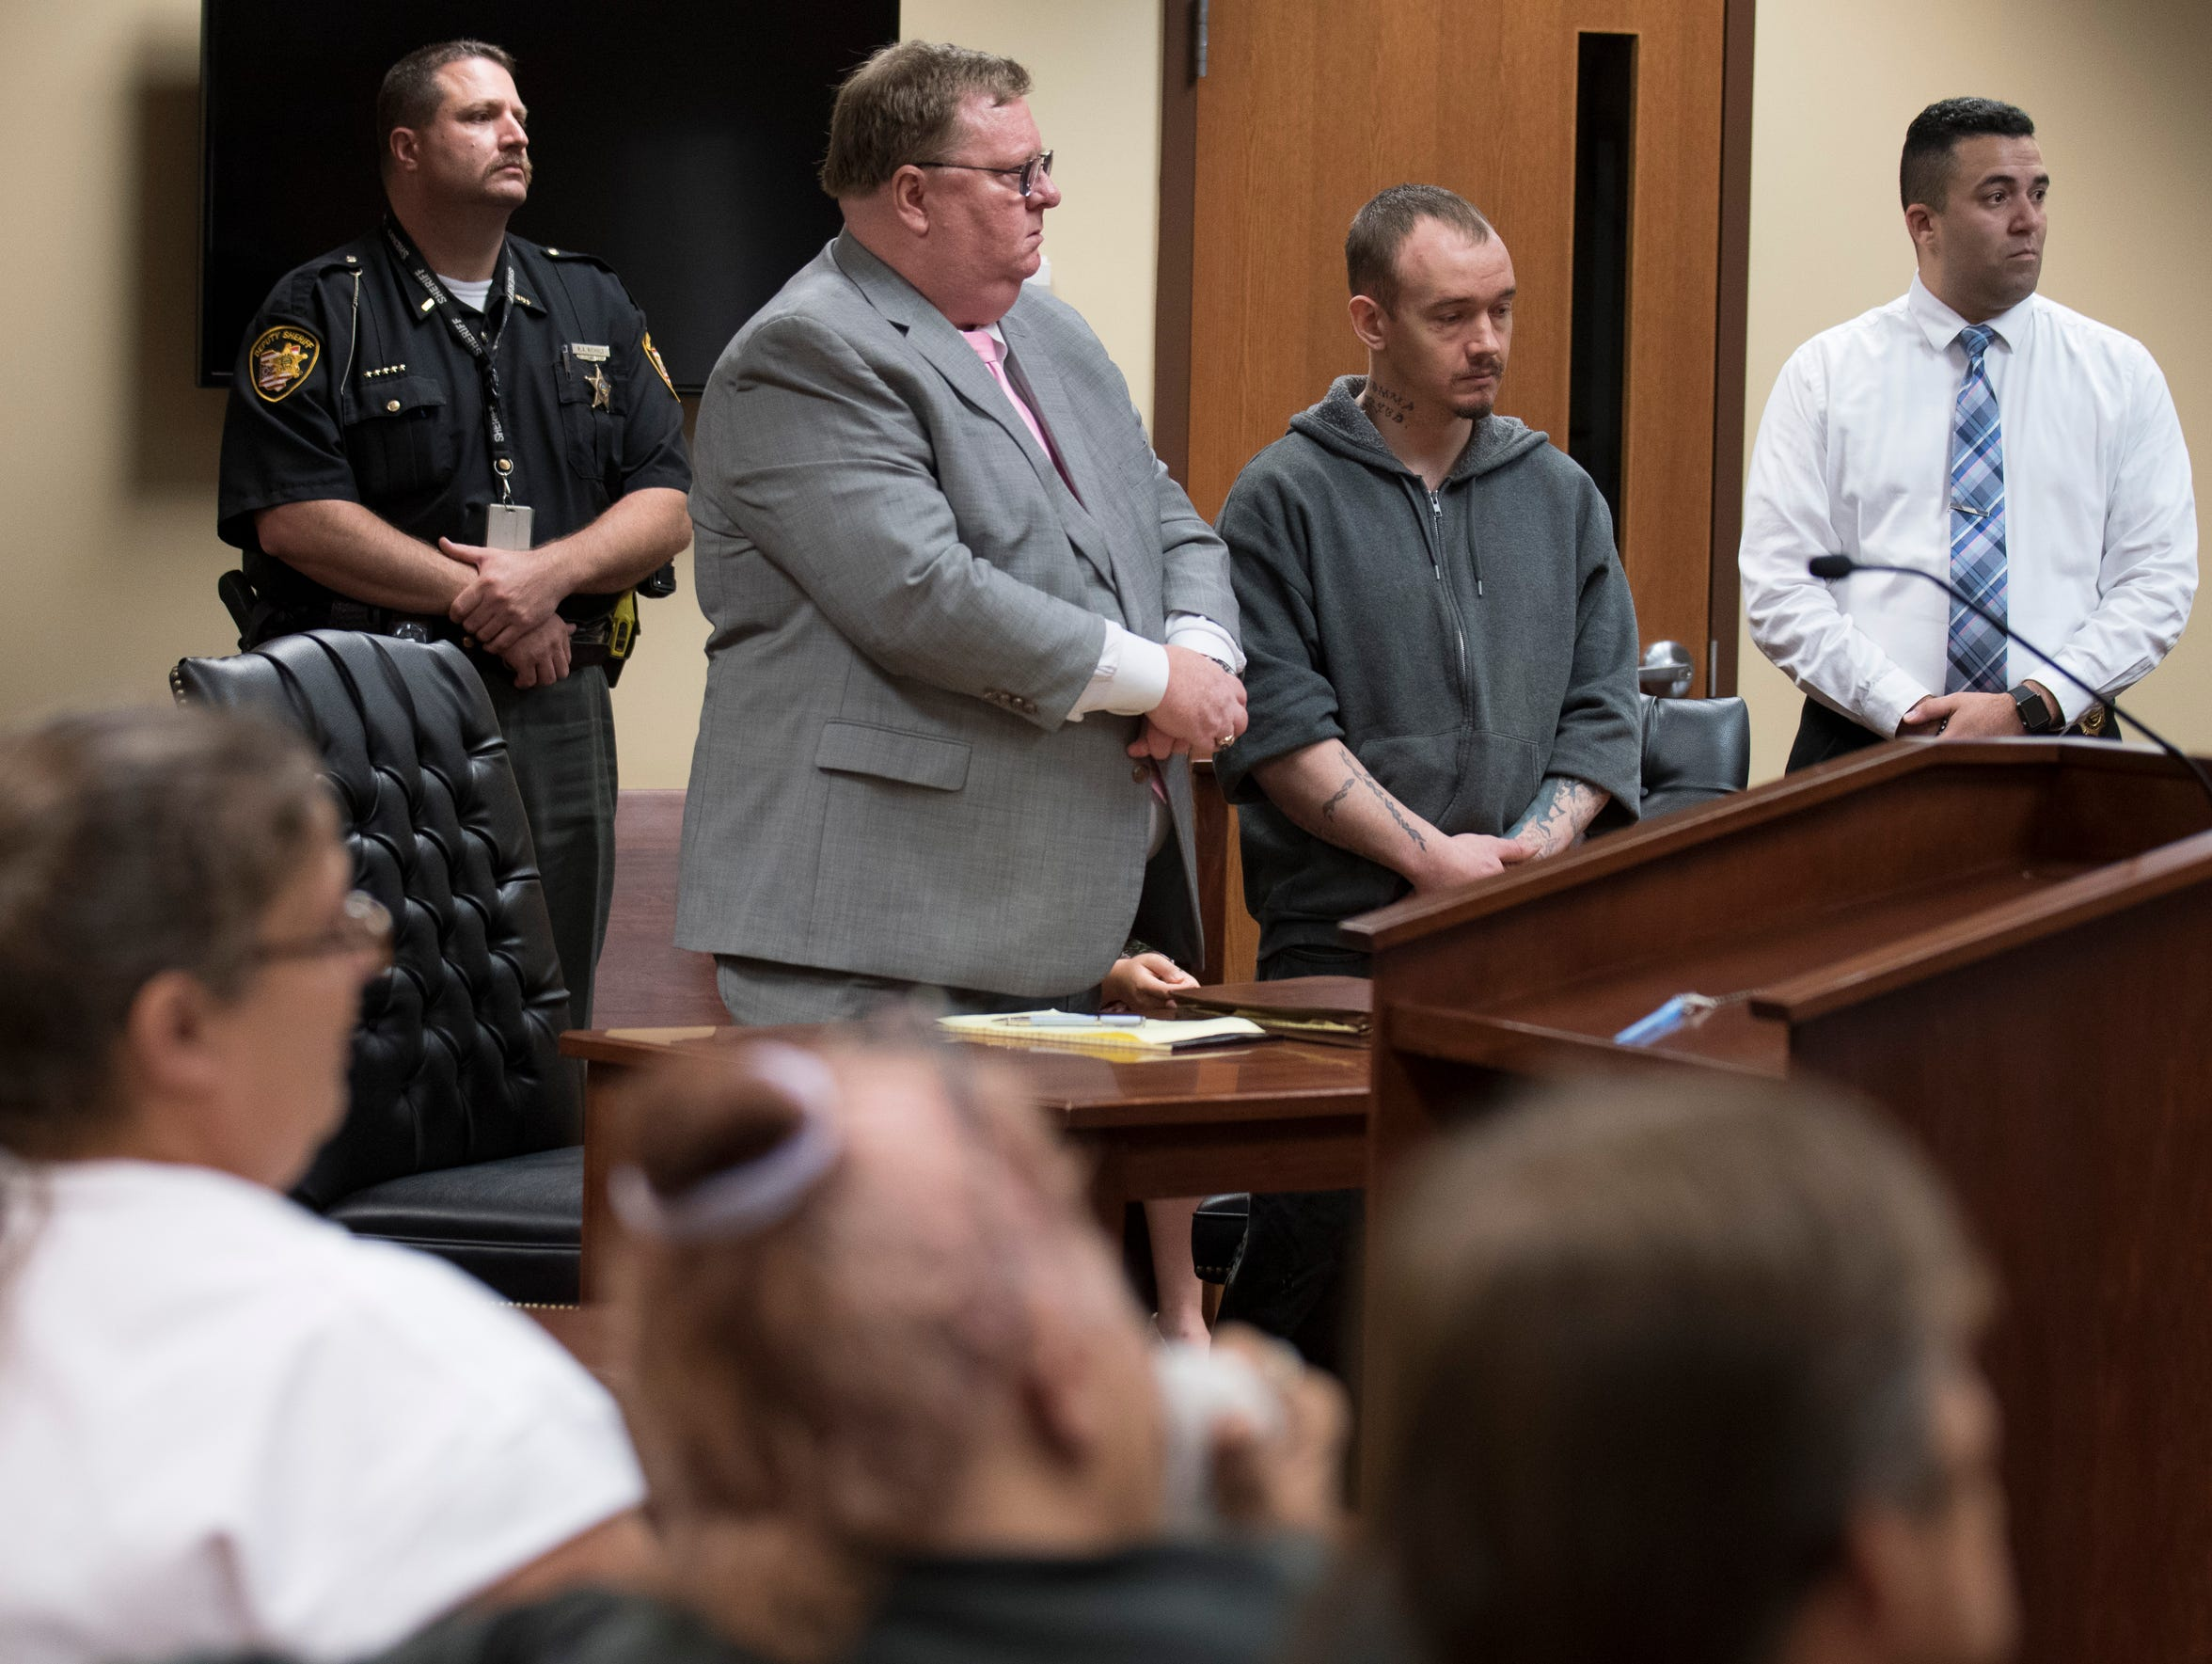 Christopher Detty, second from right, addresses Jason